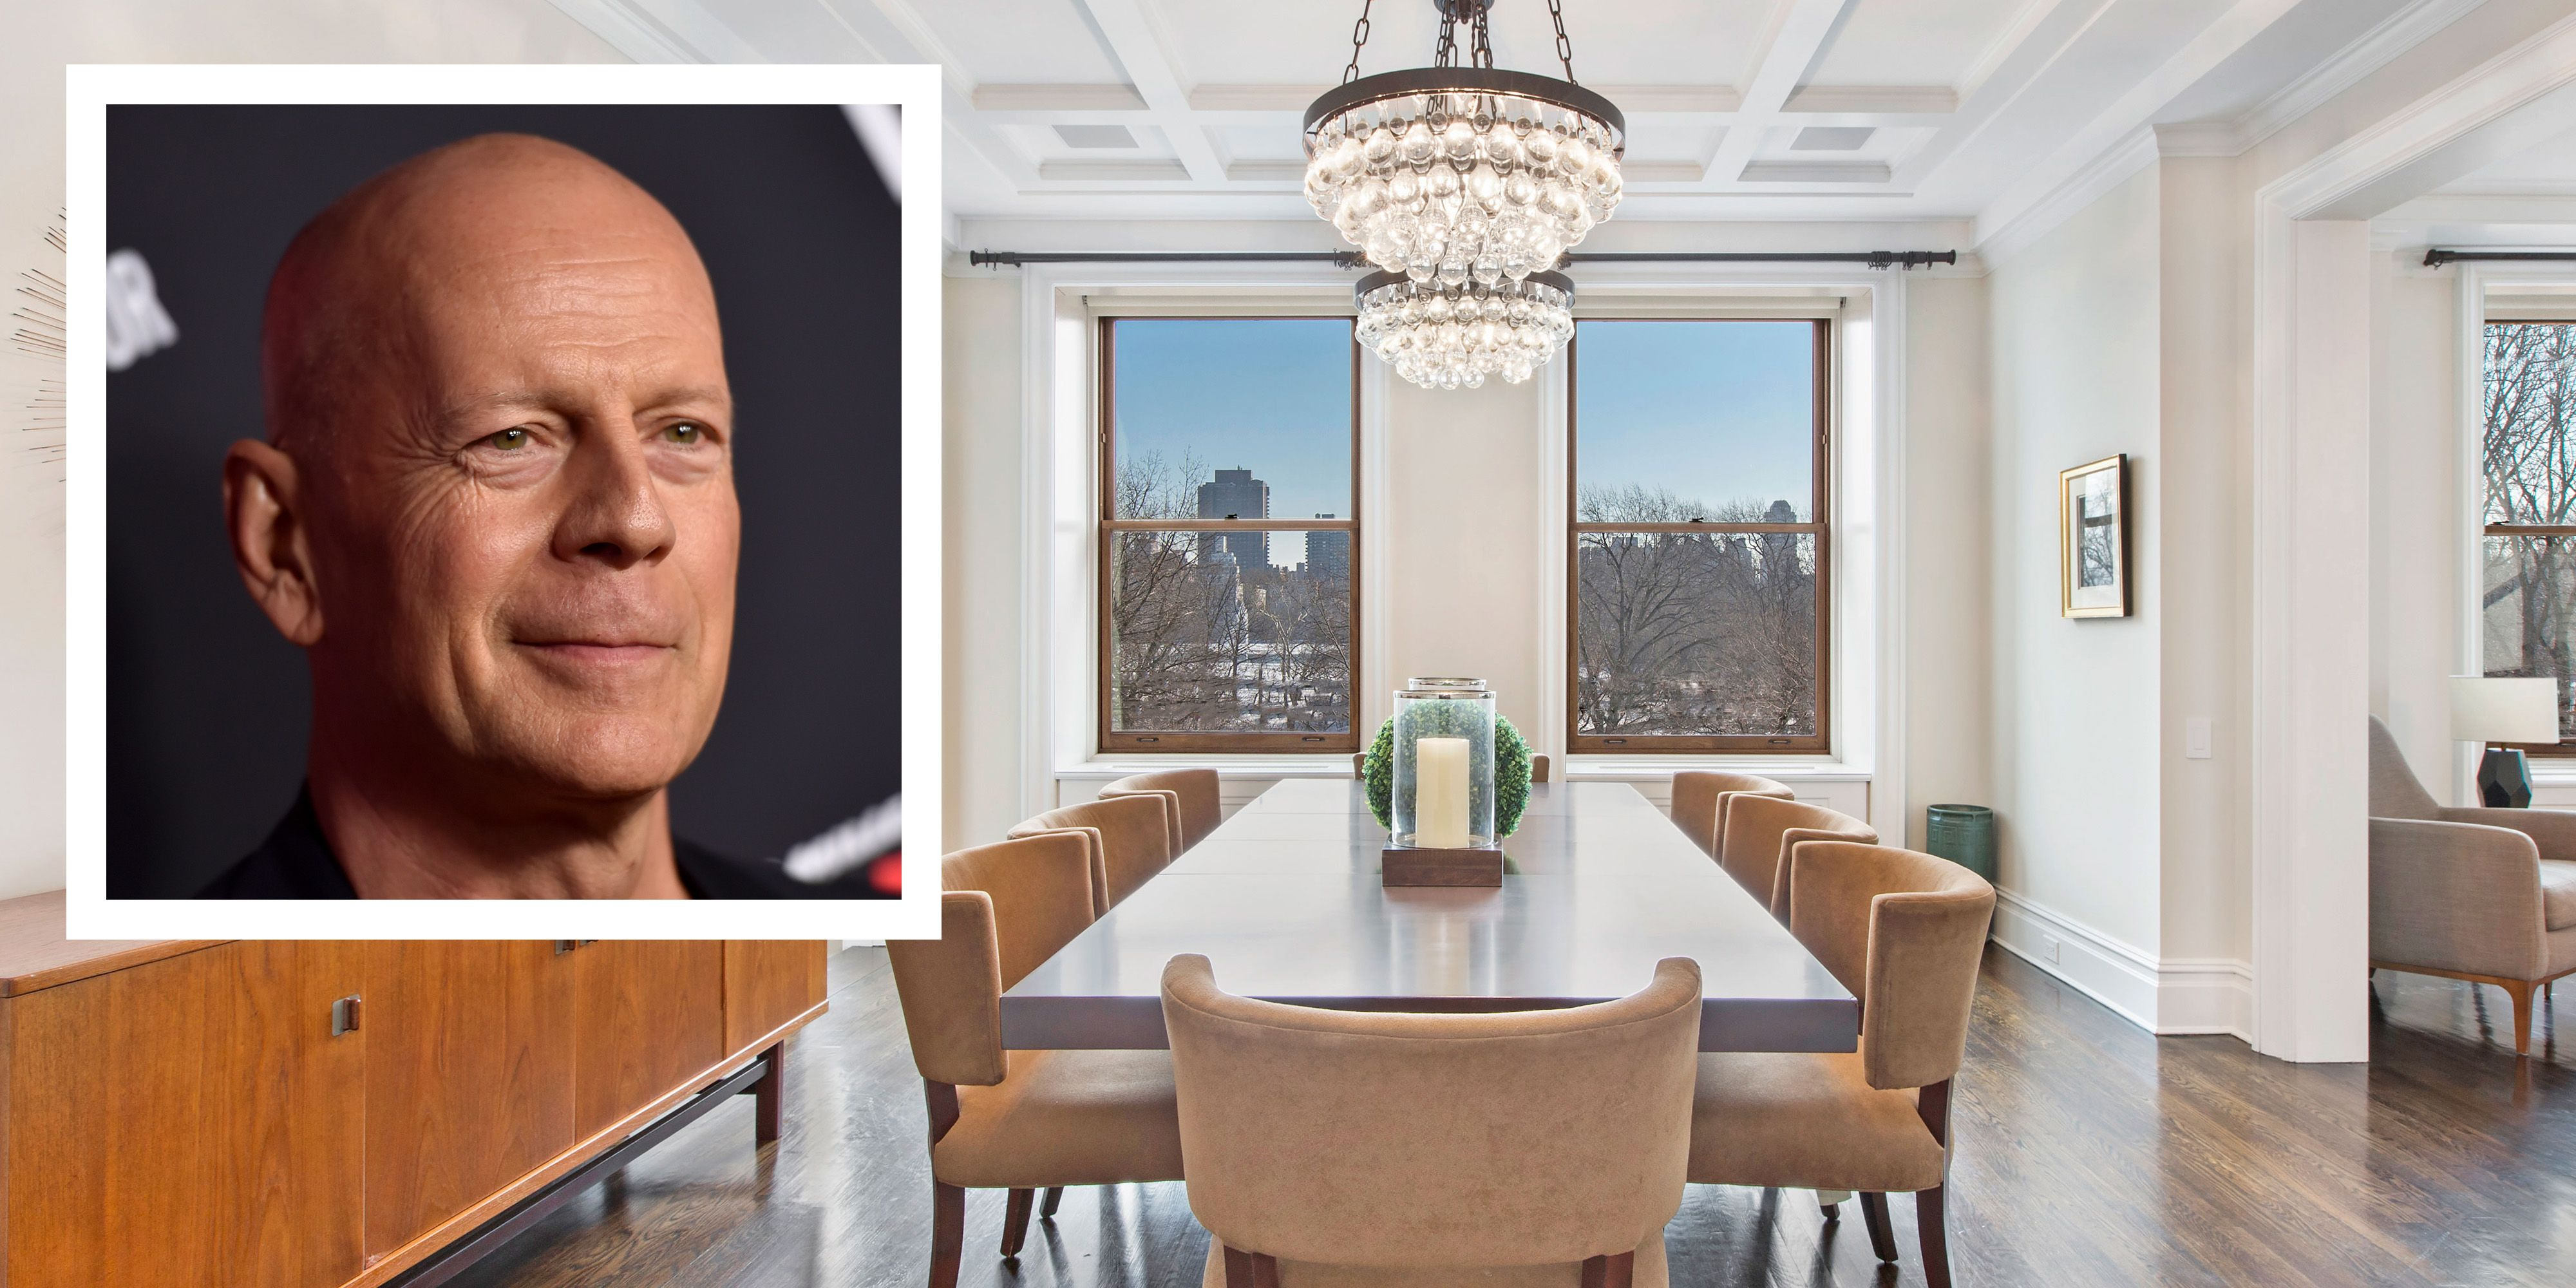 The Actor Found A Buyer For The 6,000 Square Foot Pad Almost Immediately  After Listing It.